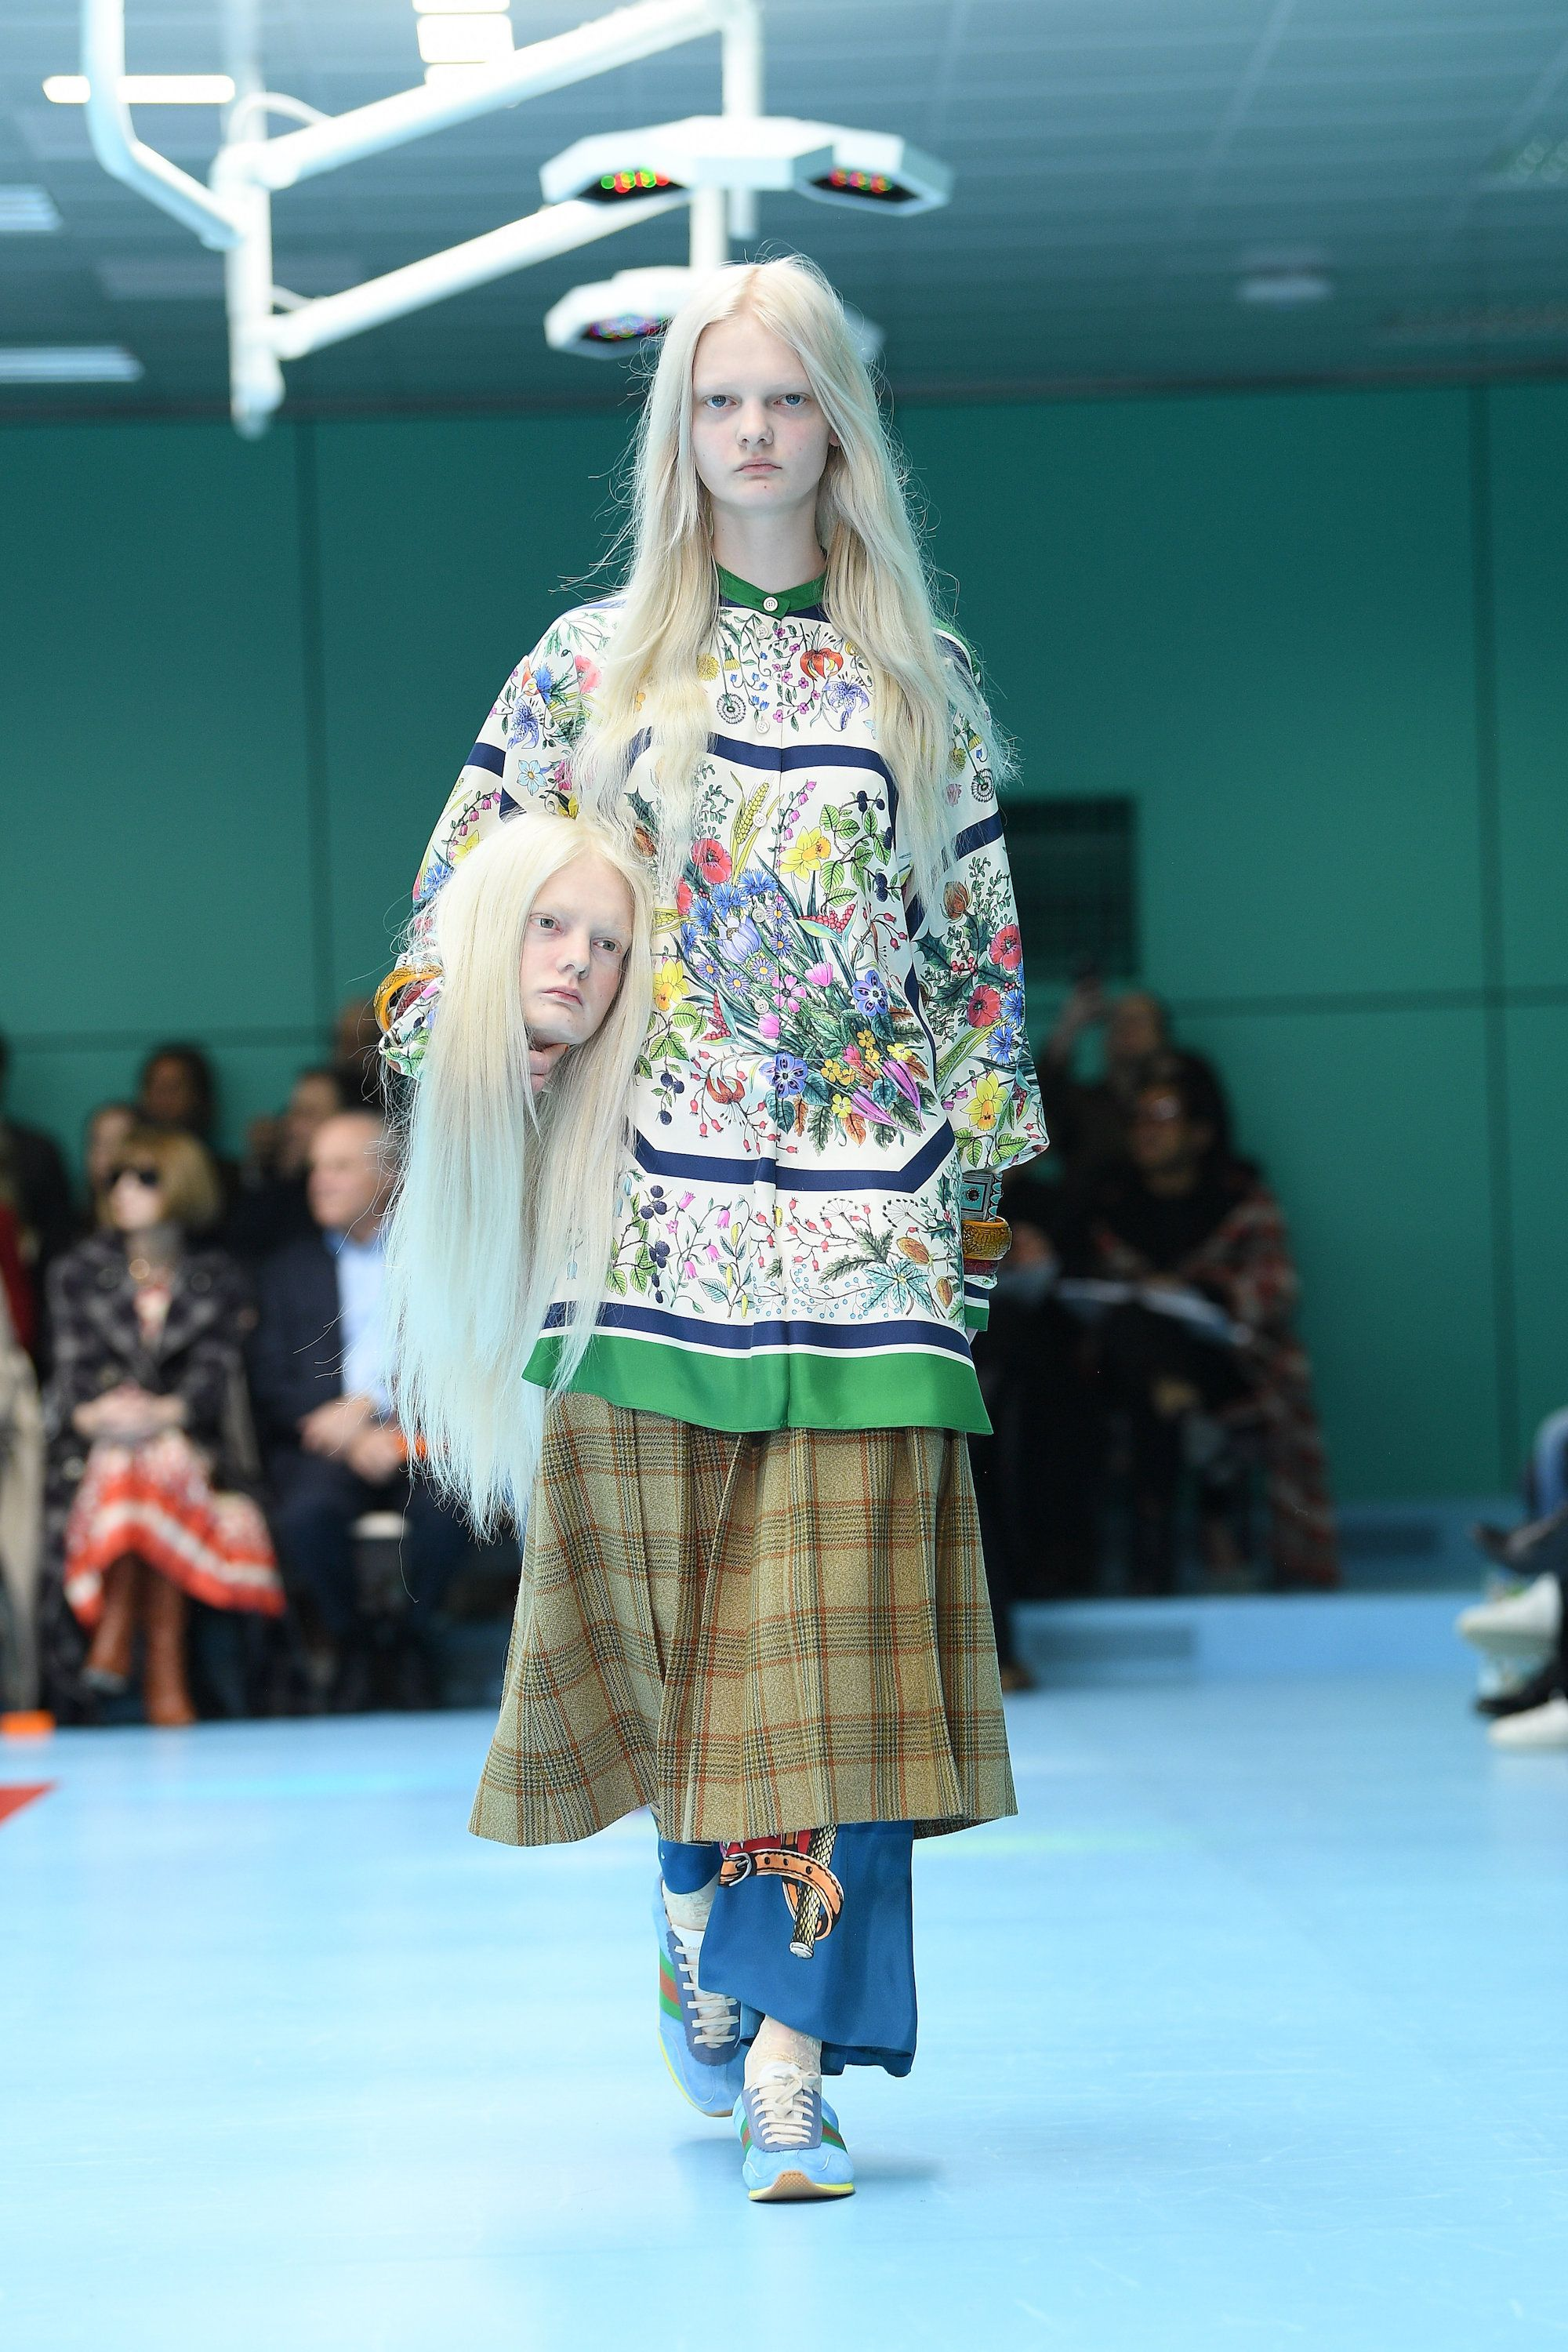 Gucci models carried severed heads on the runway weird